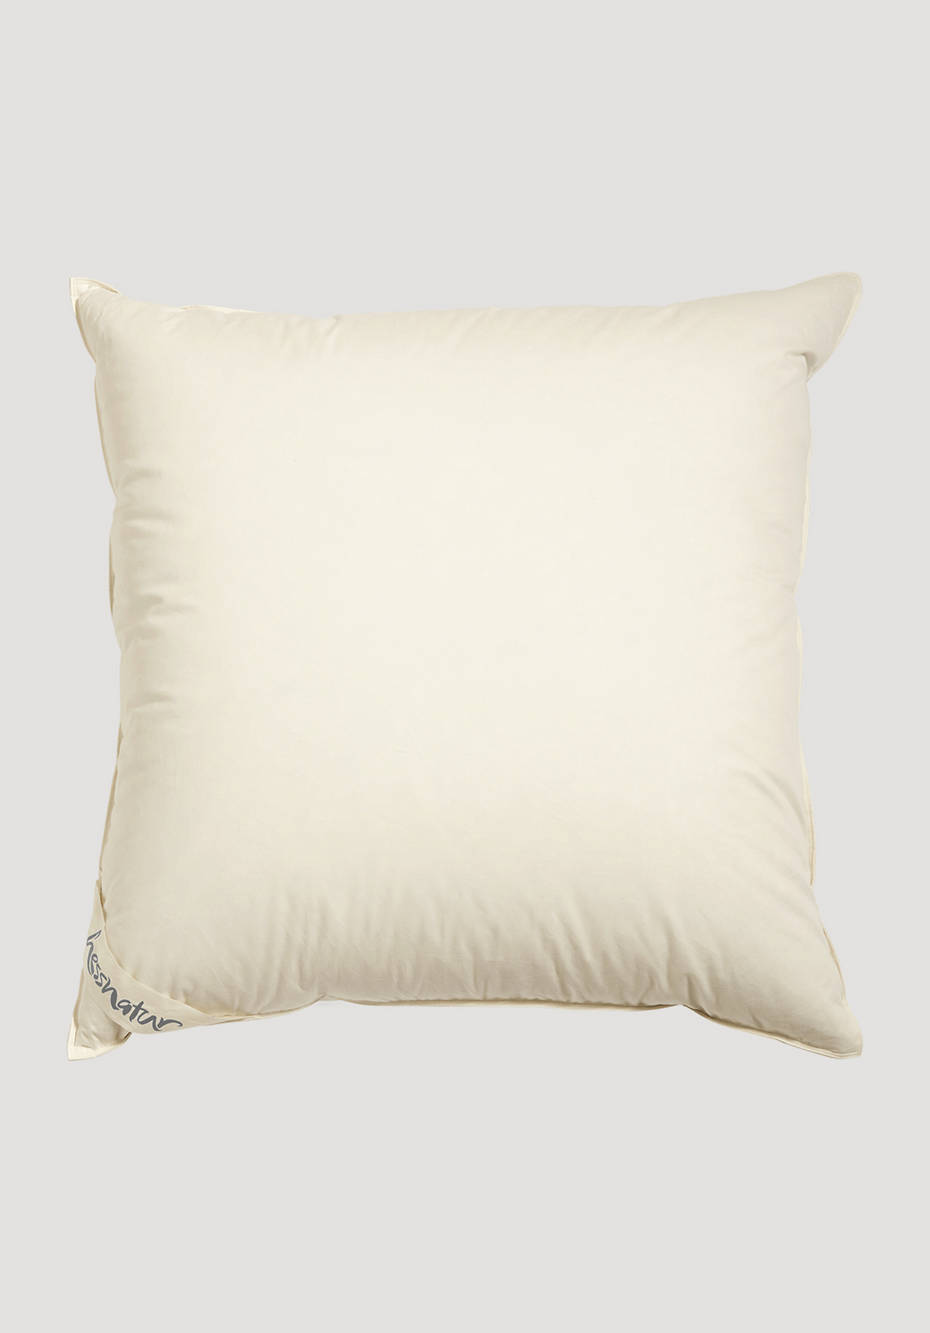 3-chamber pillow with fair down and feathers